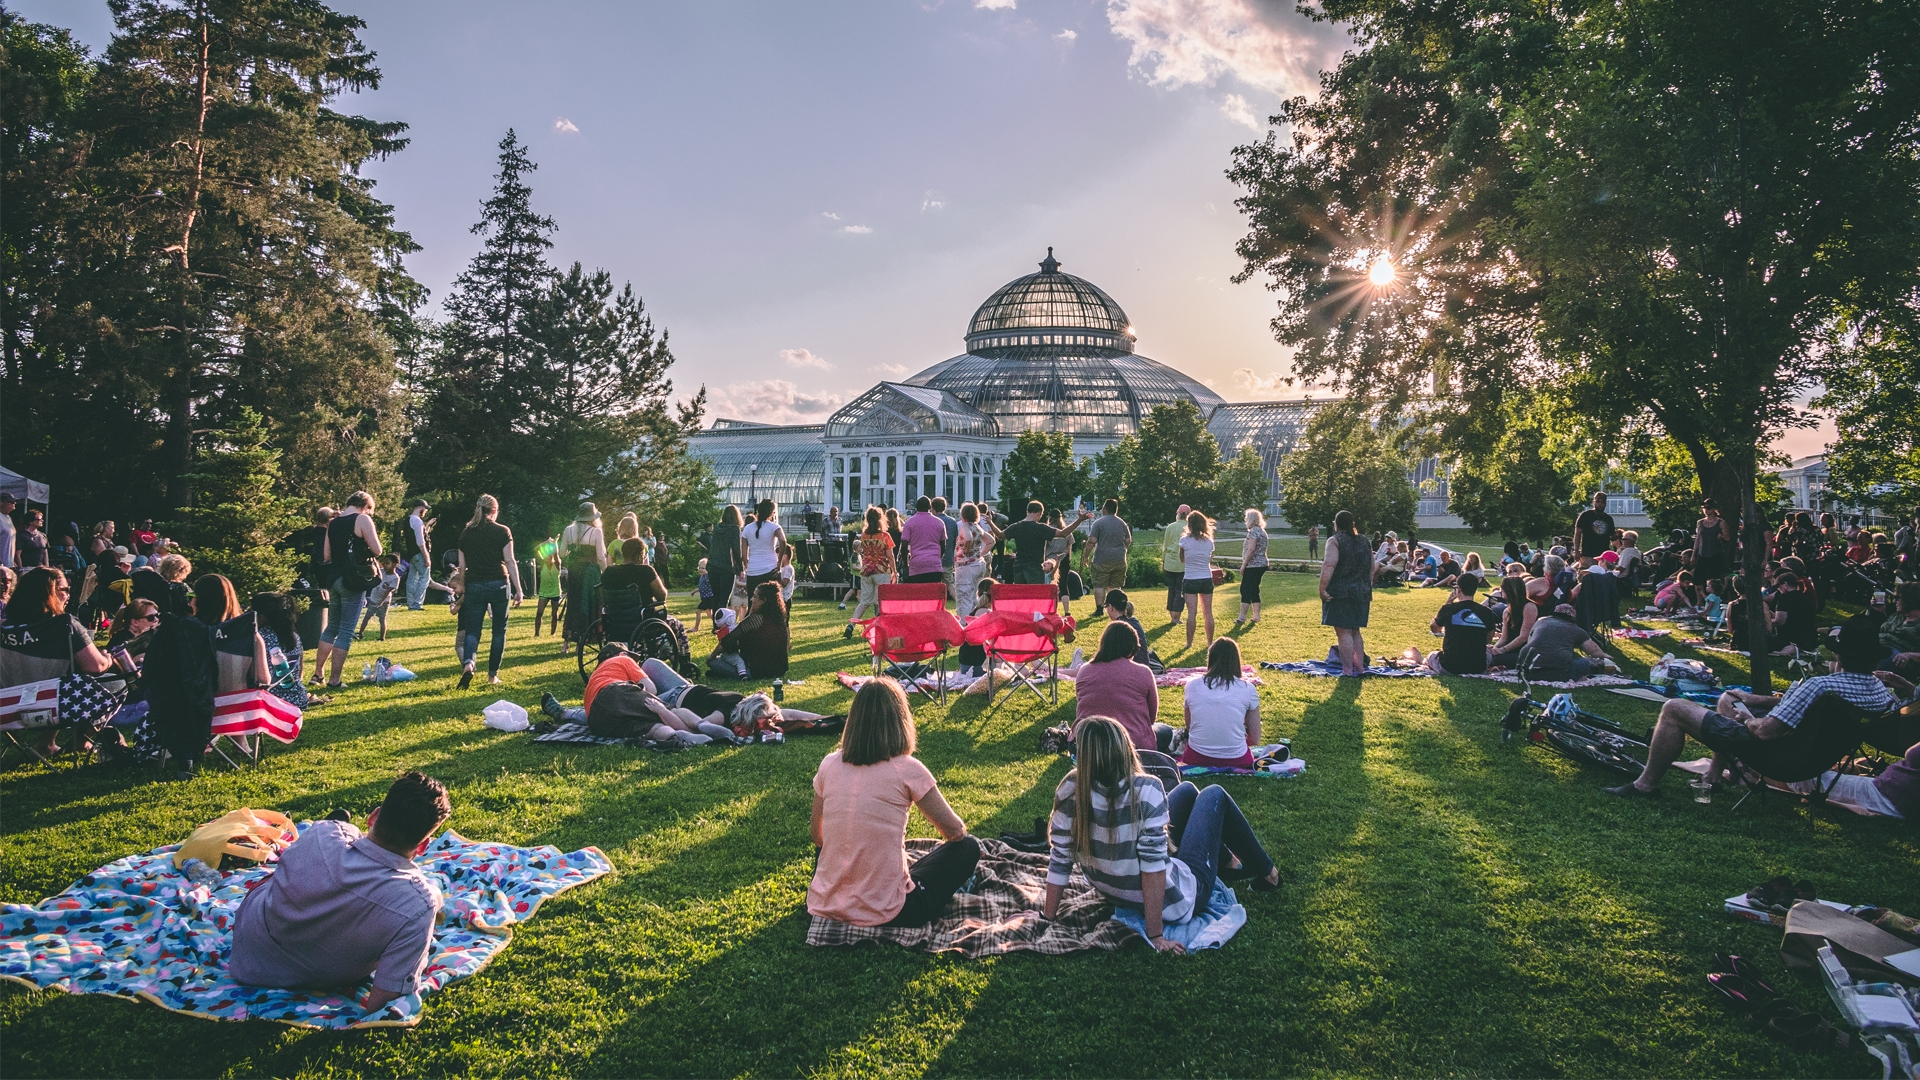 Nearly every night of the summer you can enjoy music at an outdoor stage in Saint Paul.